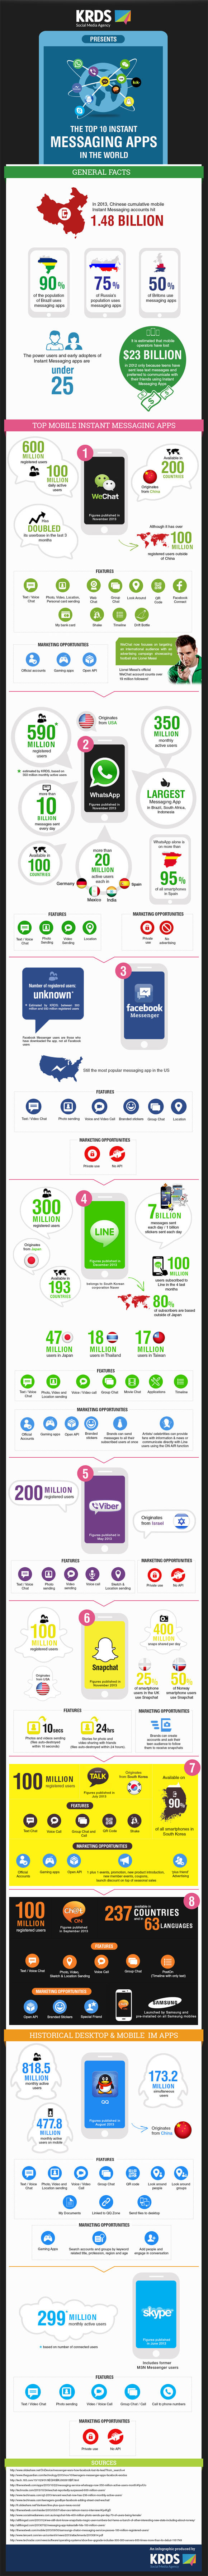 top10-instant-messaging-apps-infografik